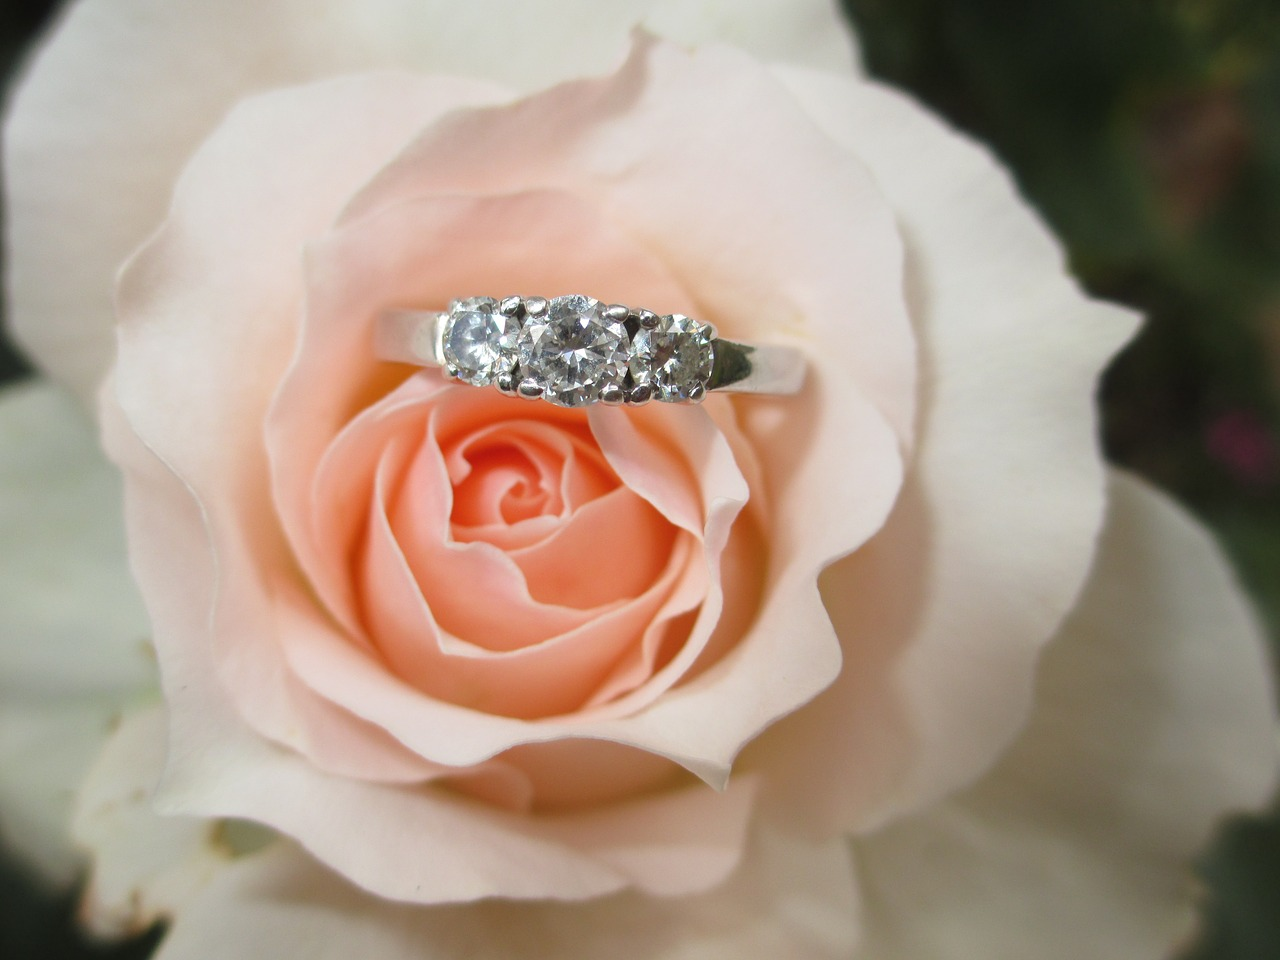 5 Ways to Sell Your Diamond Ring